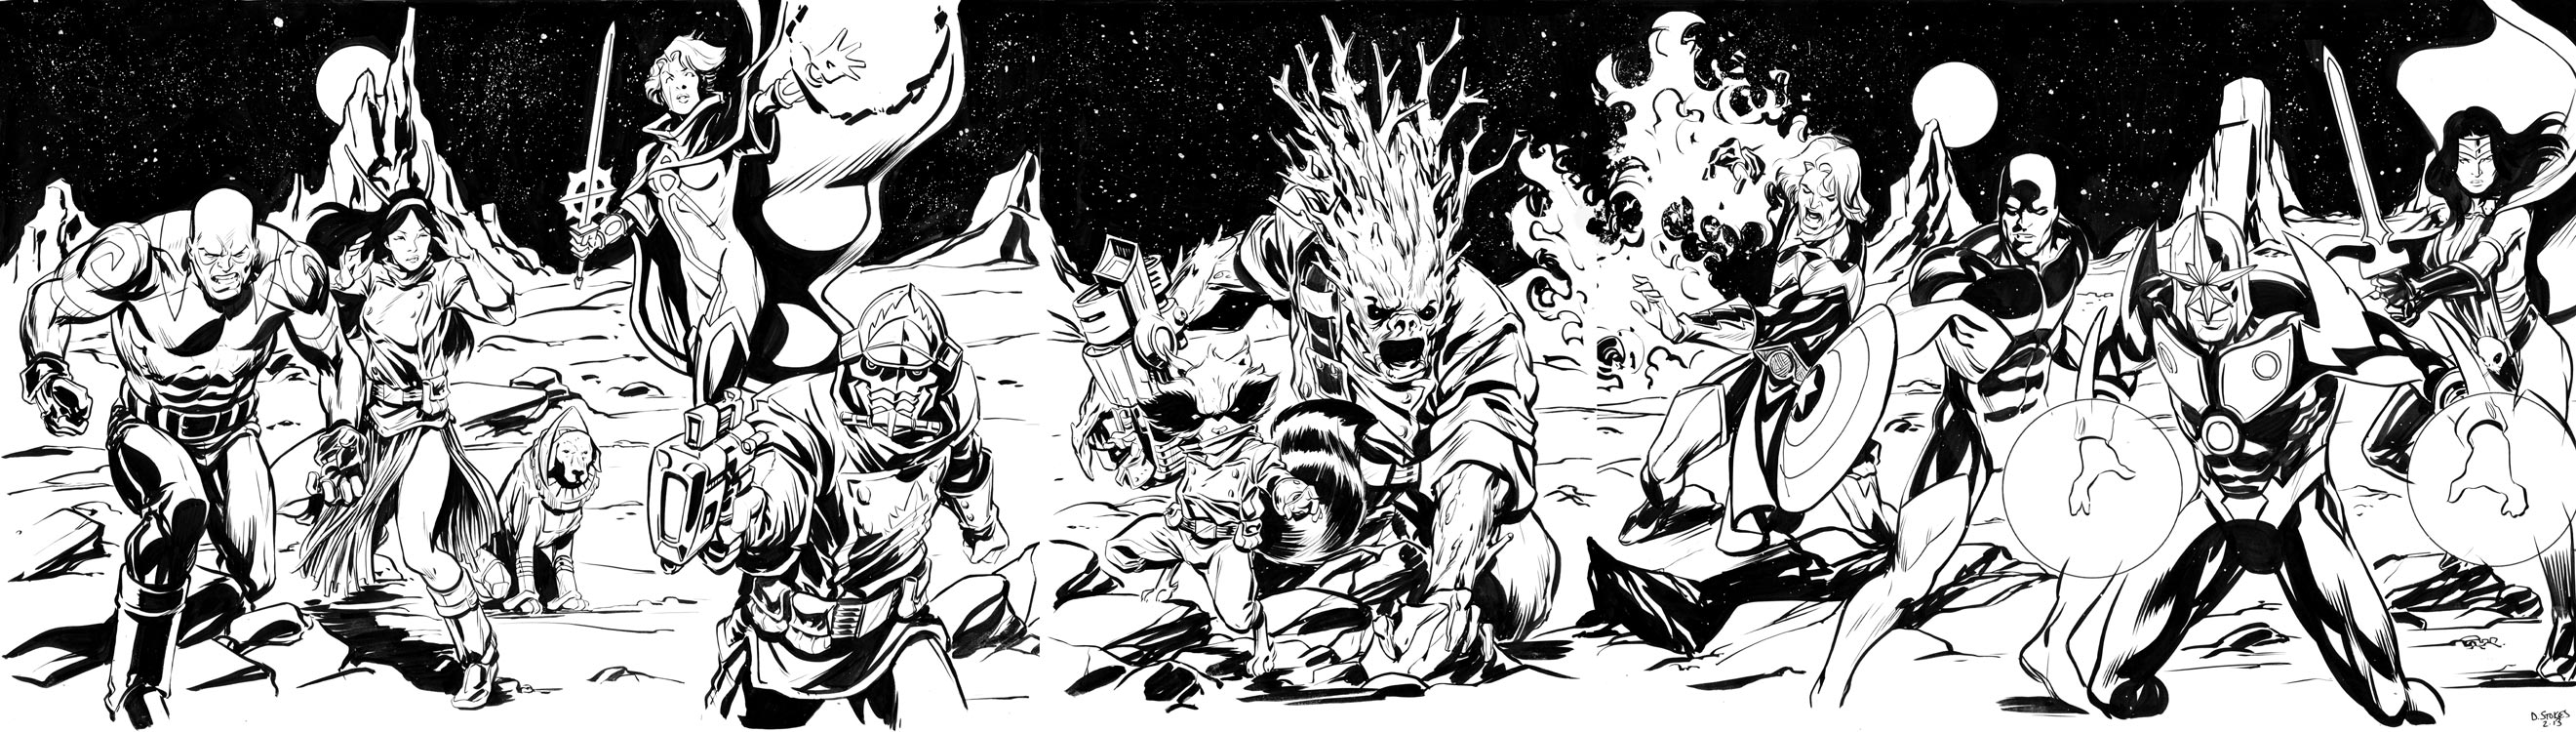 Coloring pages guardians of the galaxy - Guardians Of The Galaxy By Stokesbook On Deviantart Guardians Galaxy Coloring Pages